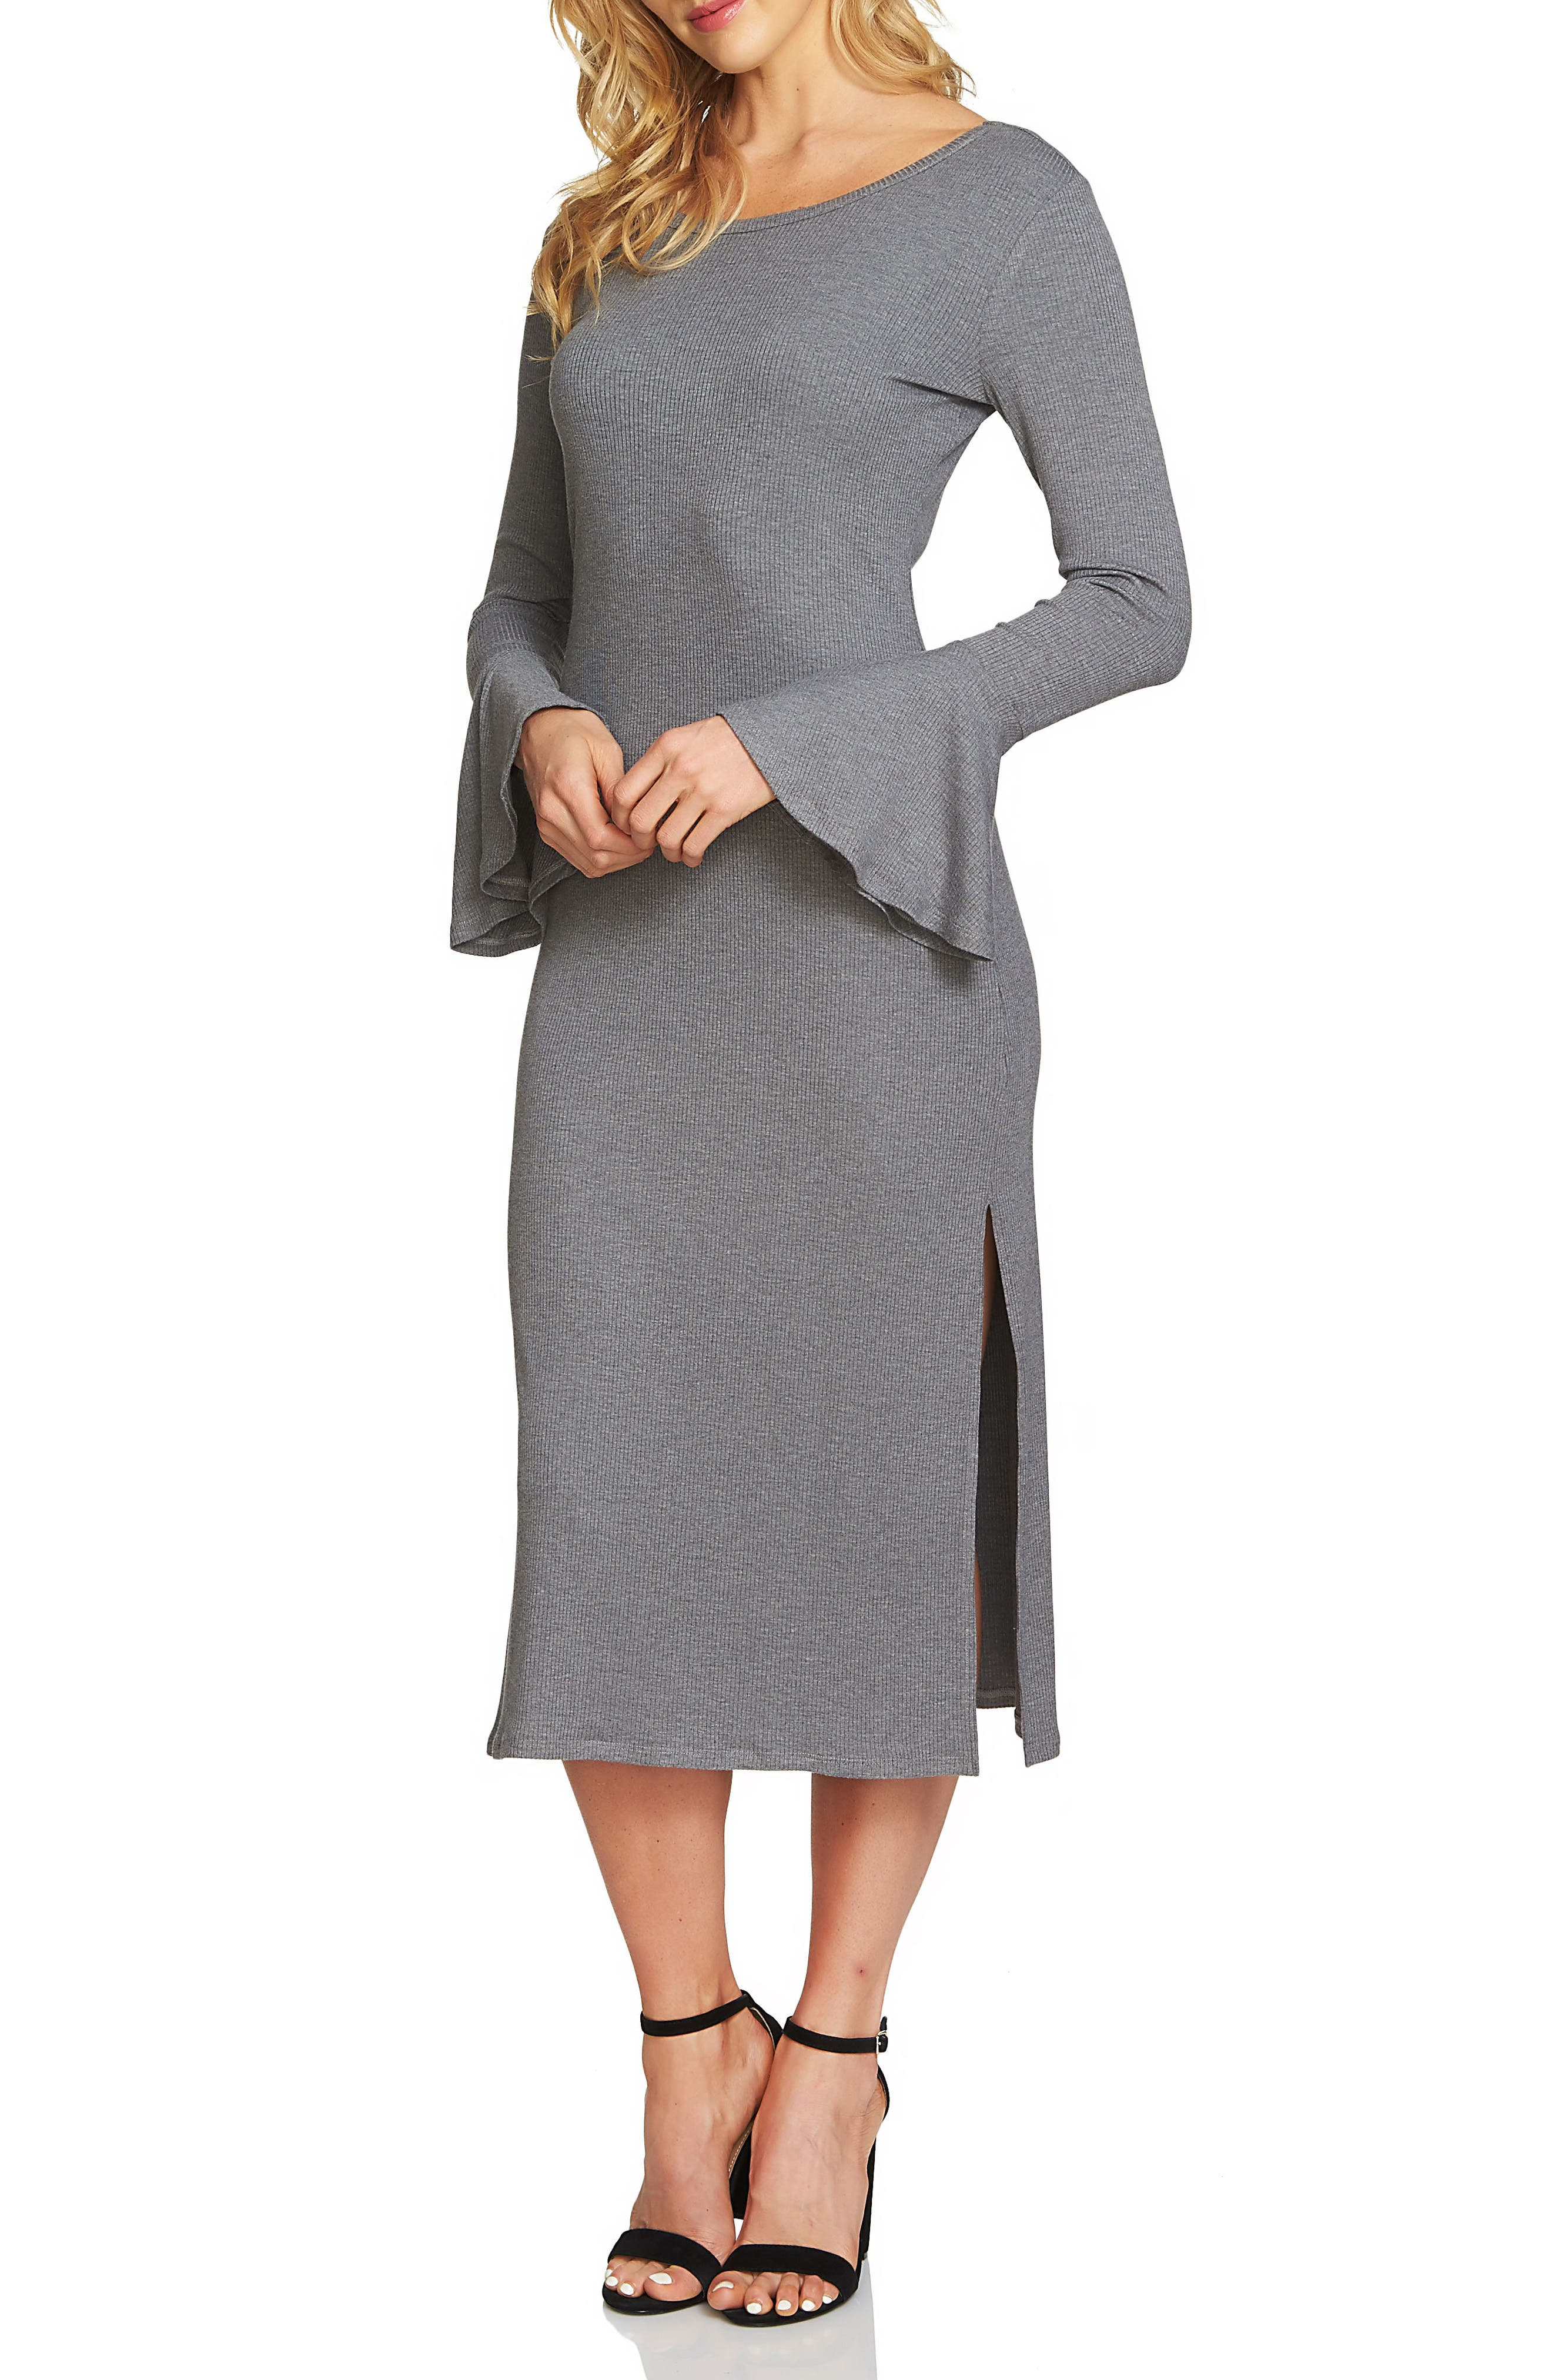 Bell Sleeve Midi Dress,                             Main thumbnail 1, color,                             Pewter Heather